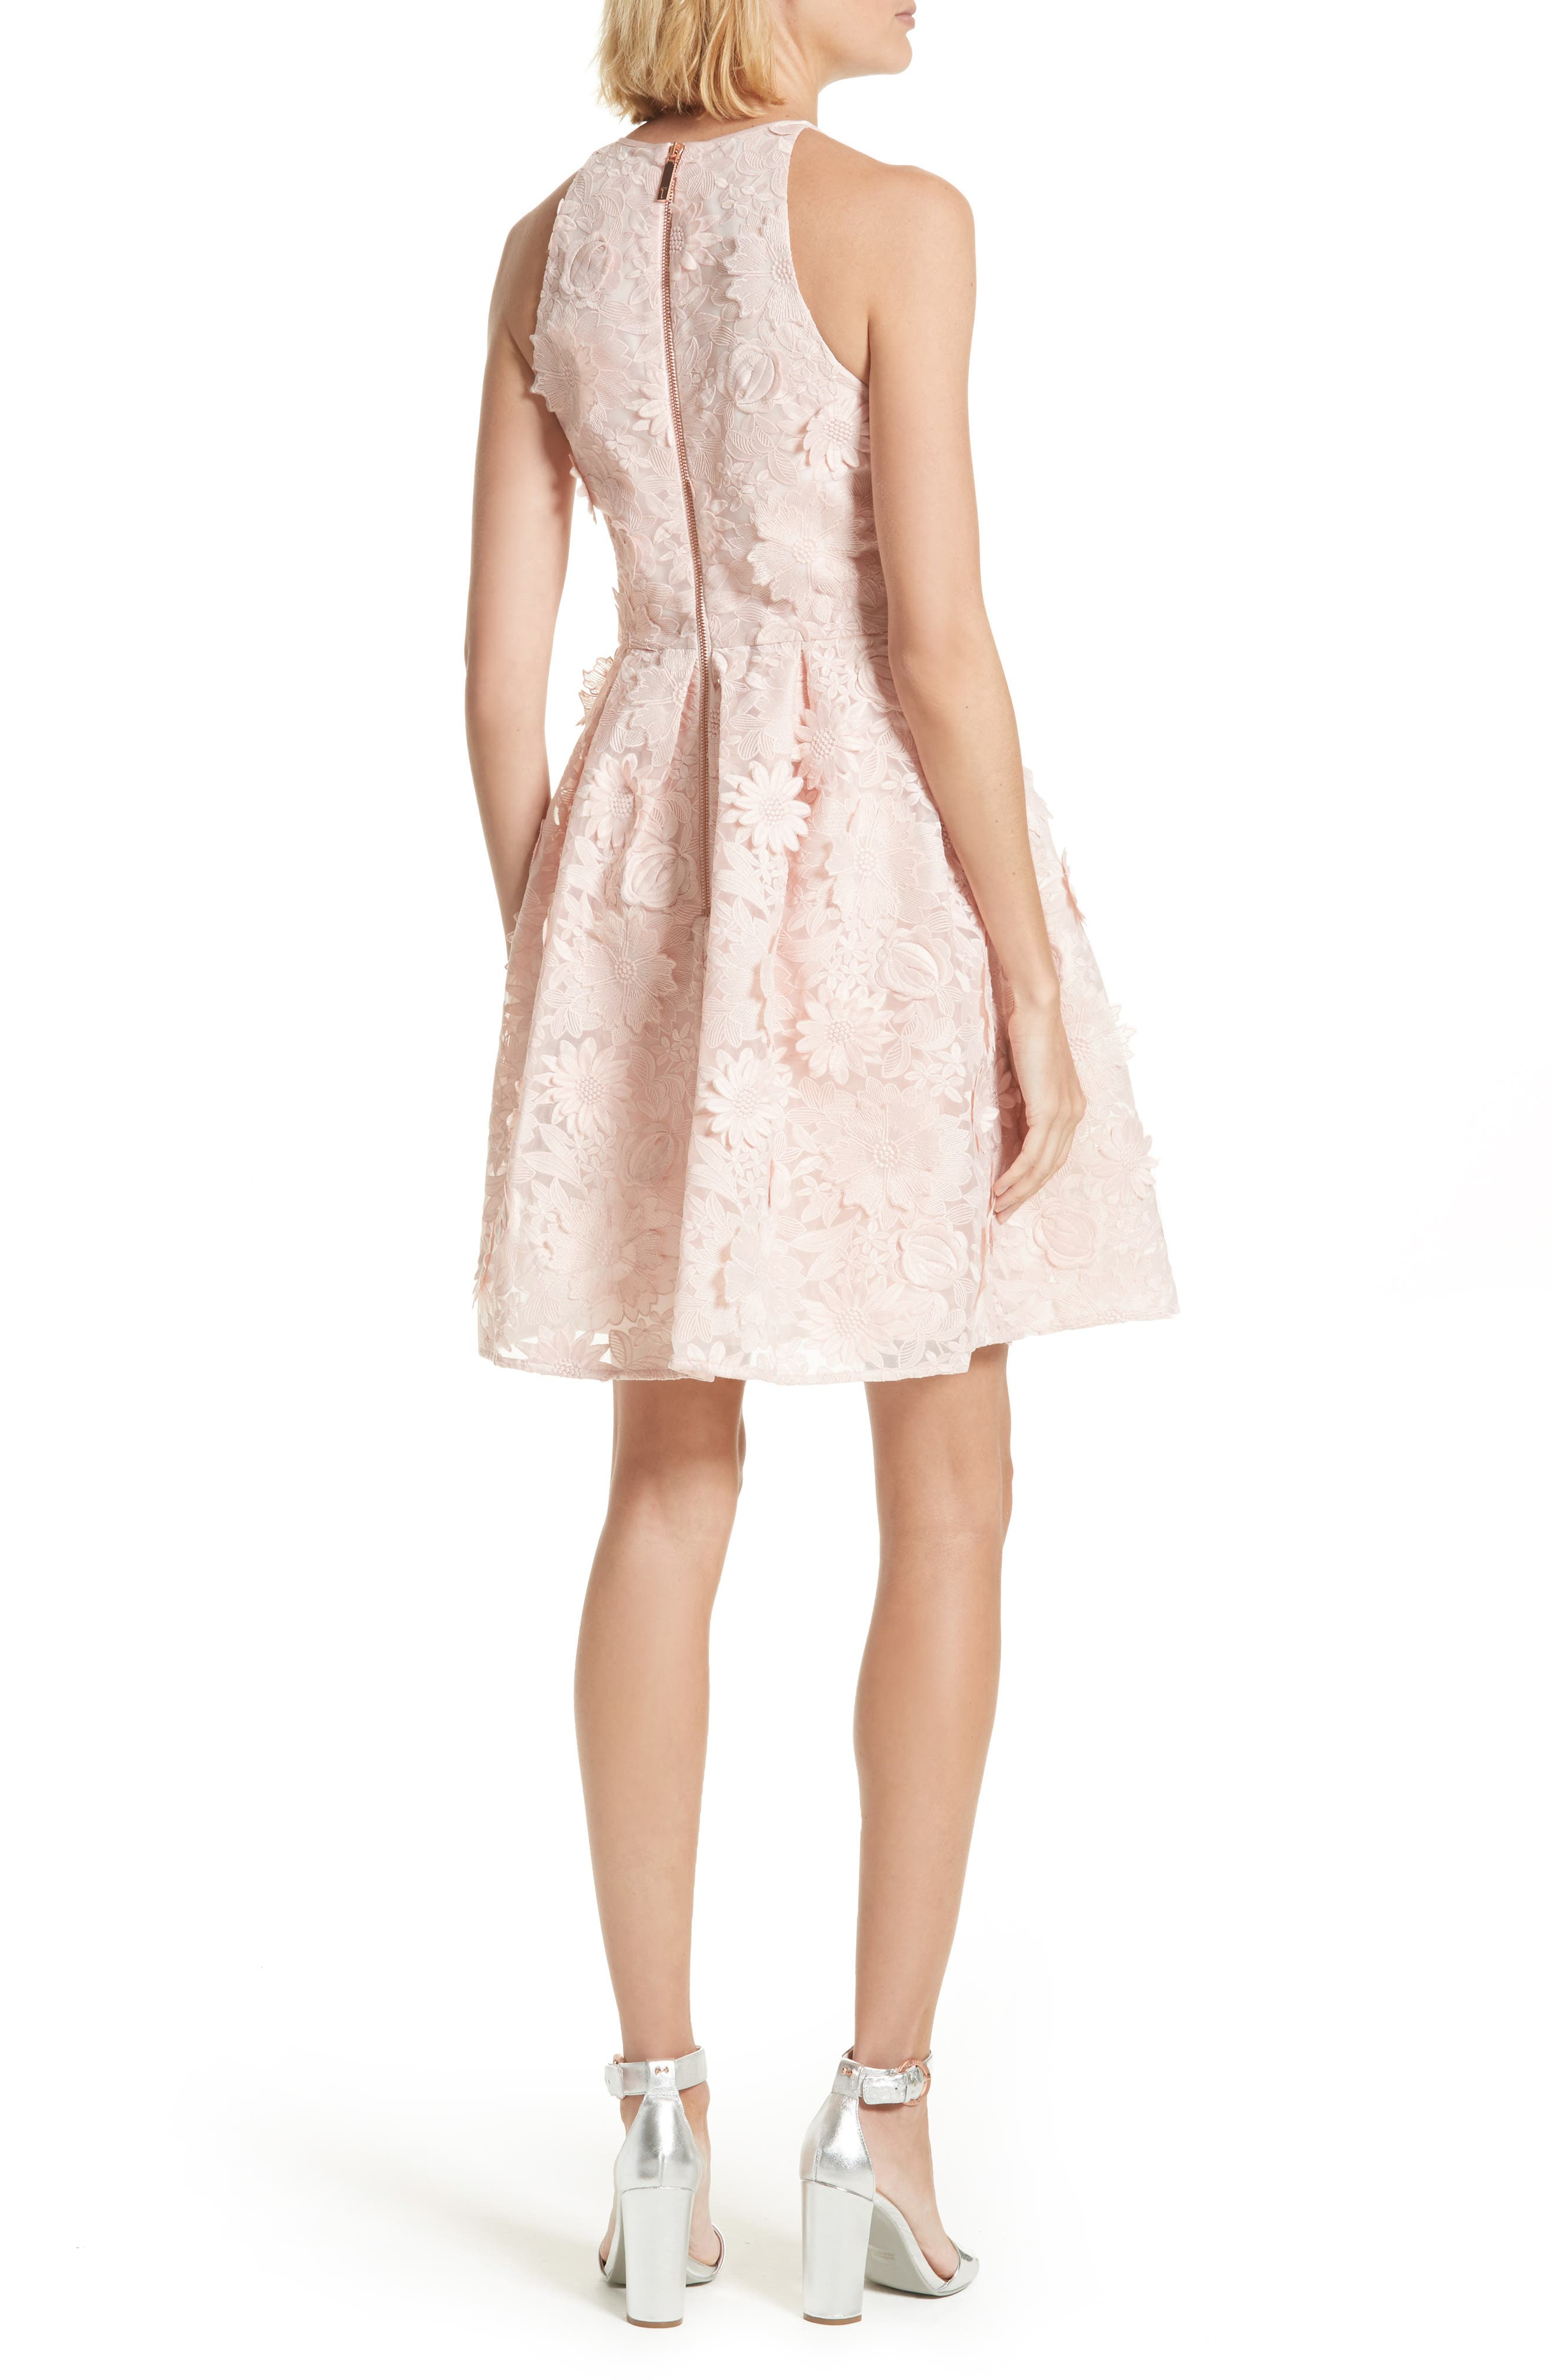 Sweetee Lace Skater Dress,                             Alternate thumbnail 2, color,                             682